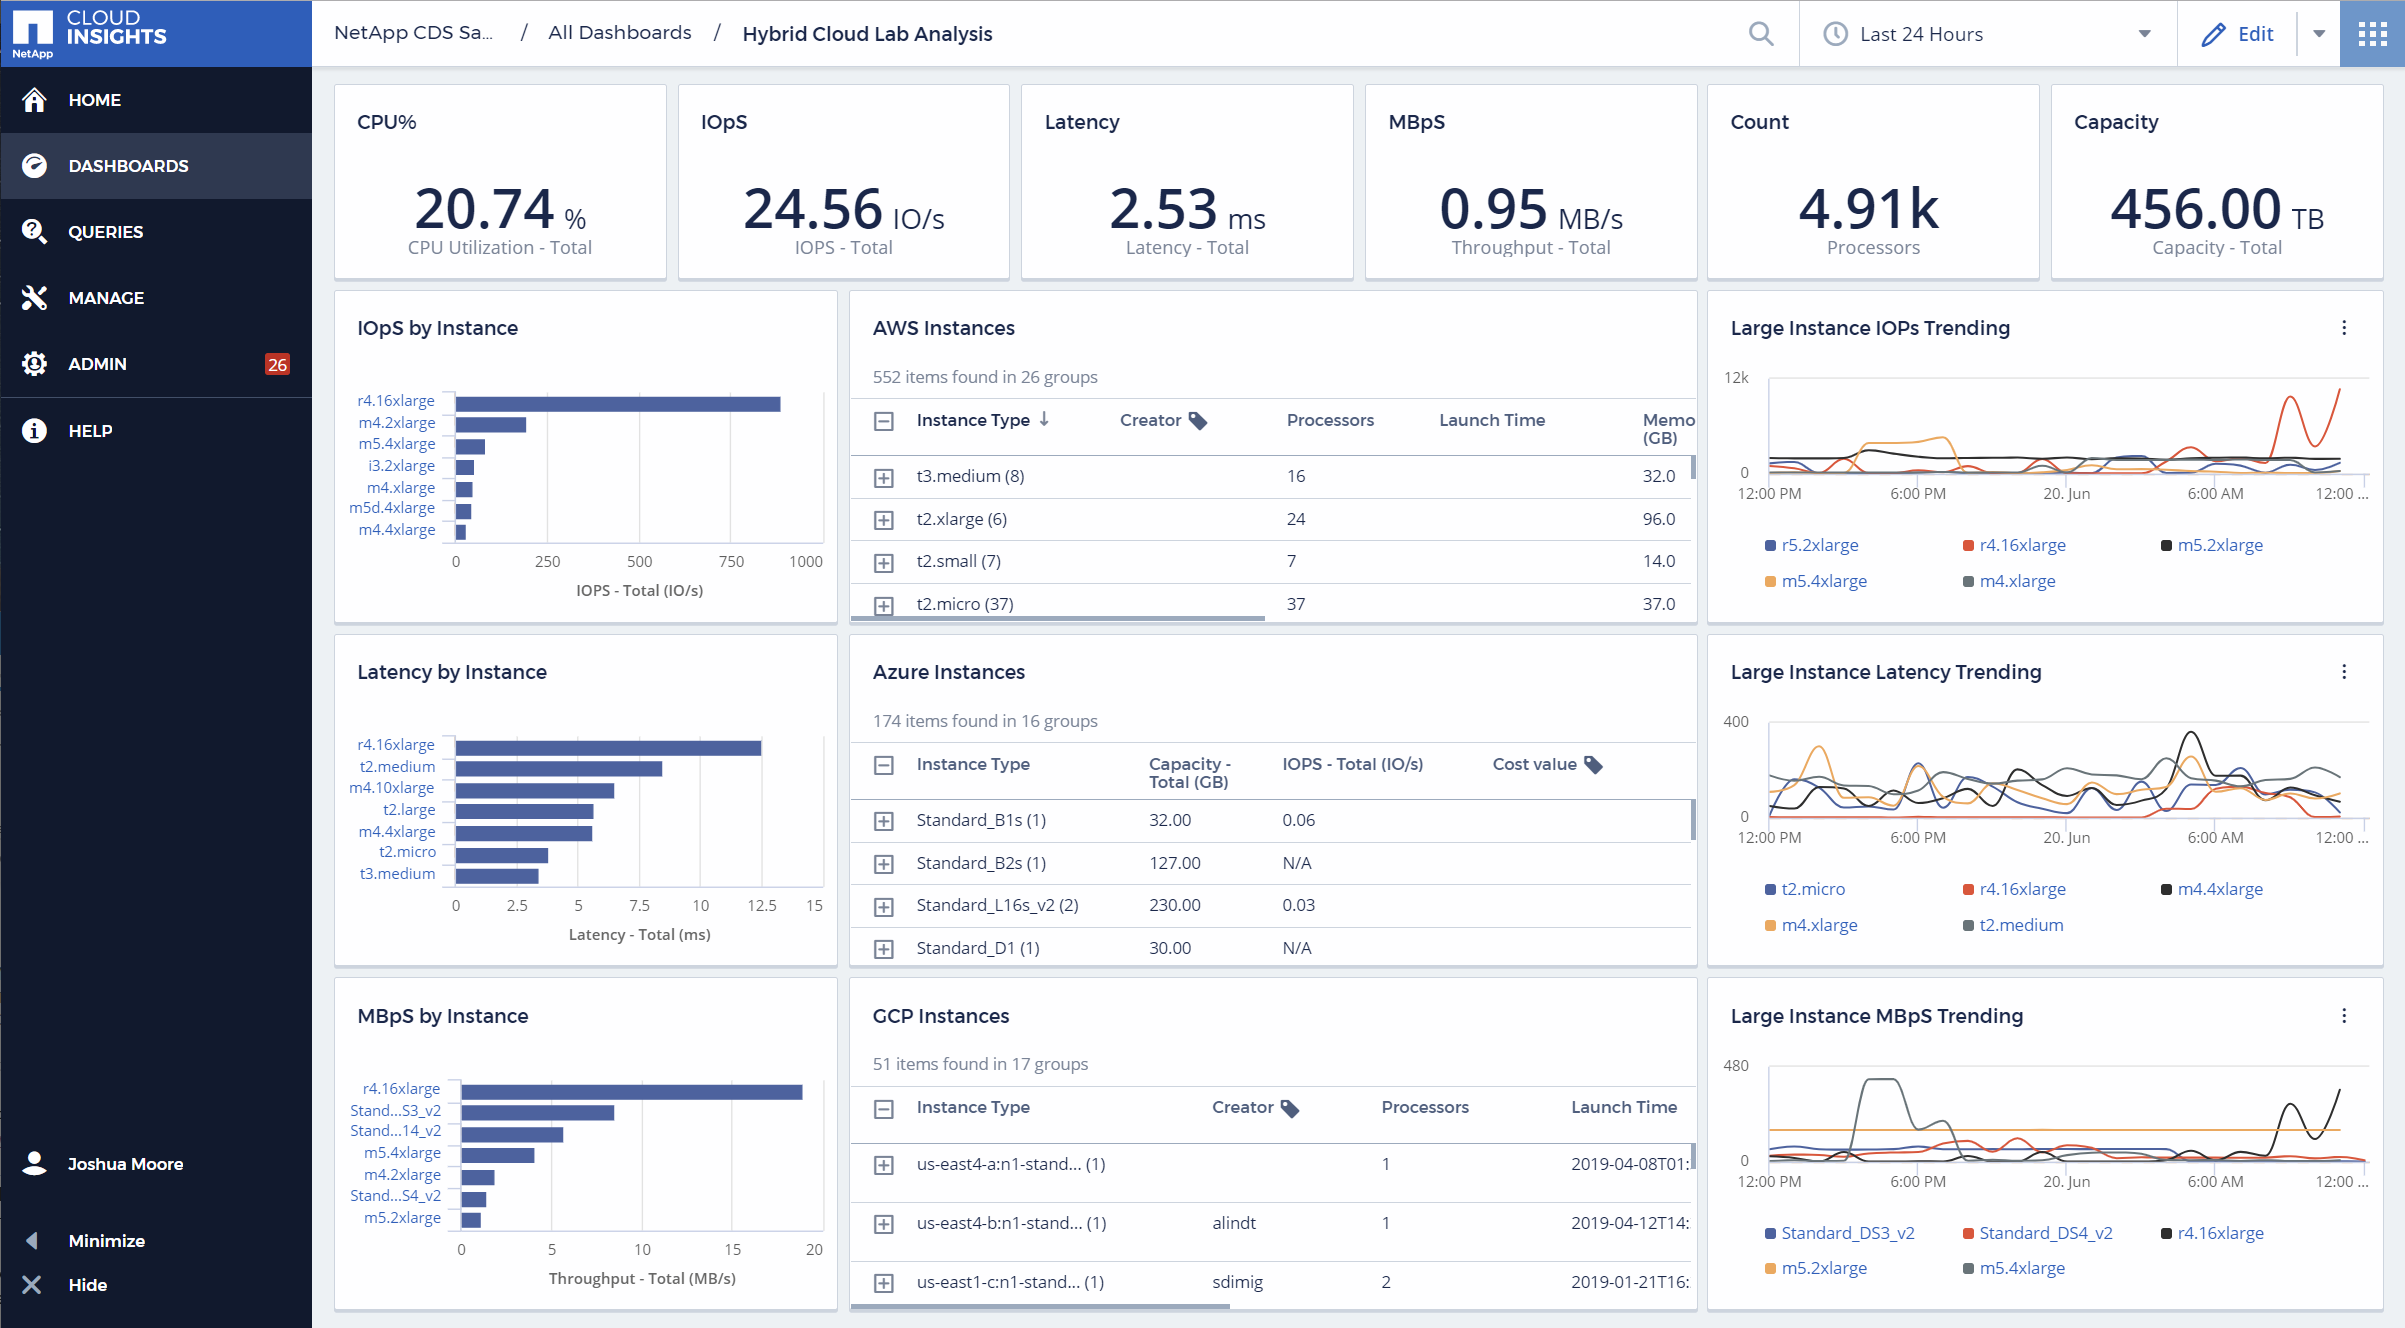 Cloud Insights Dashboards